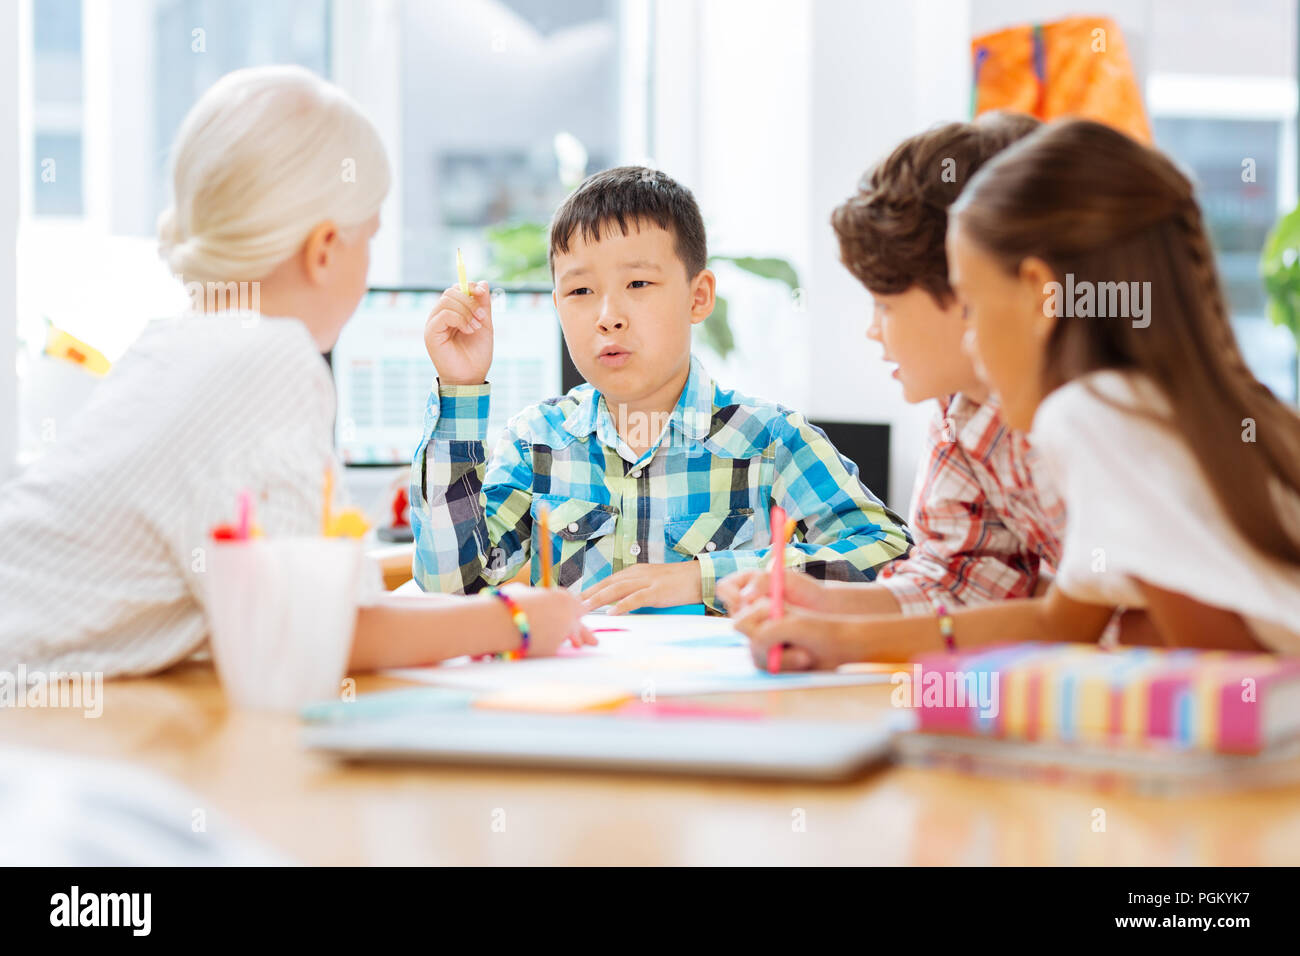 Smart schoolboy telling a story to his classmates - Stock Image